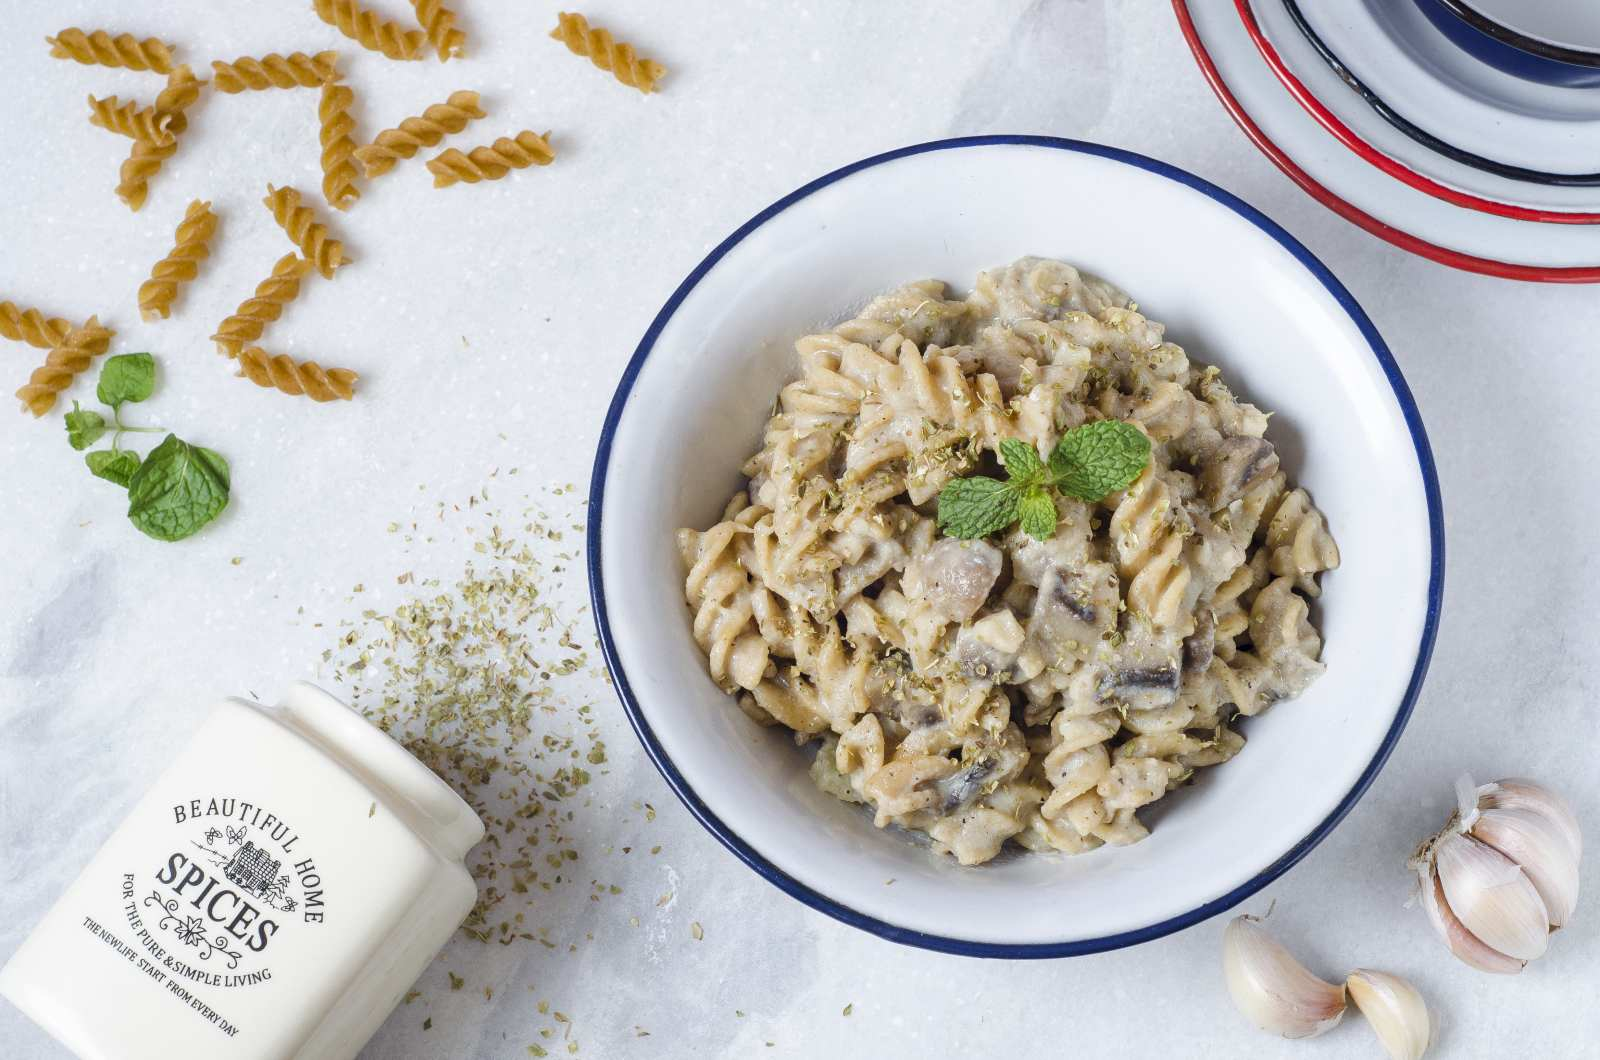 Burnt Garlic Pasta with Mushroom Recipe